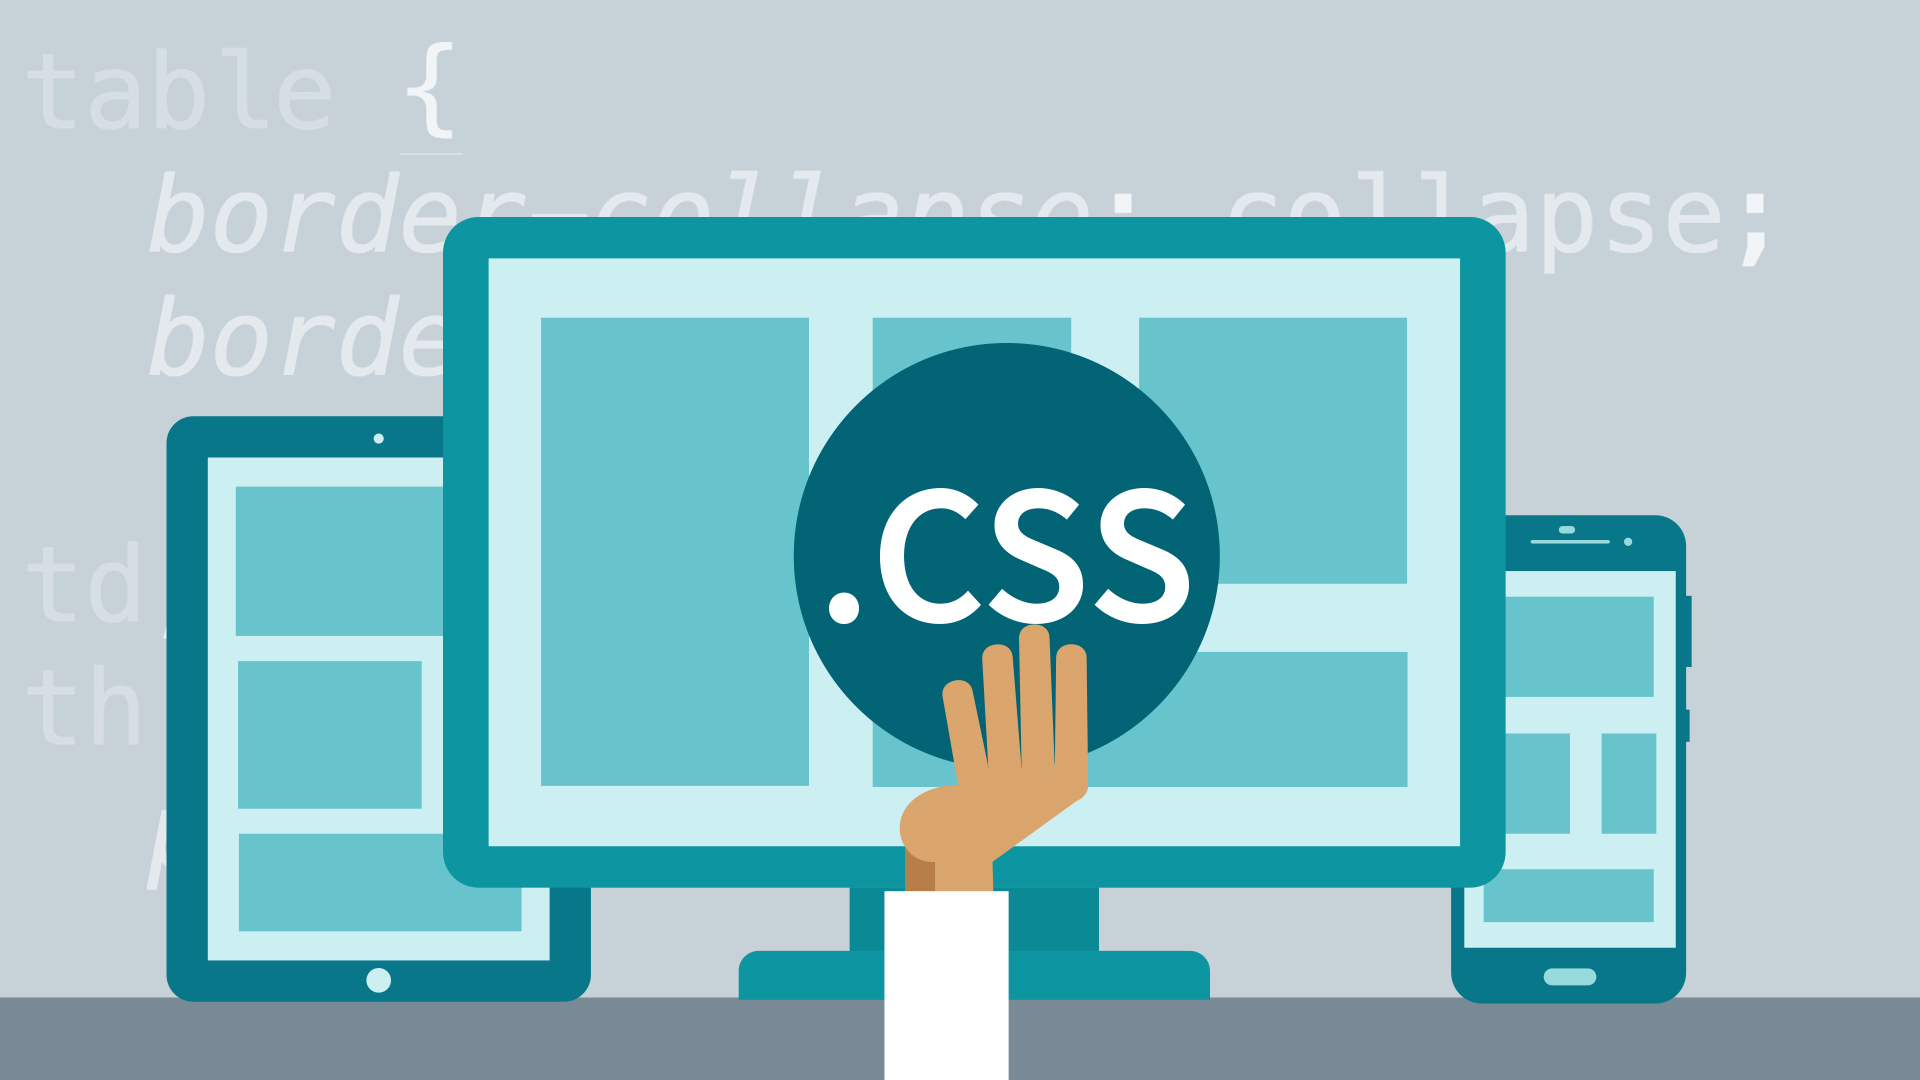 How to Become a Front-end Developer: A Guide for Beginners